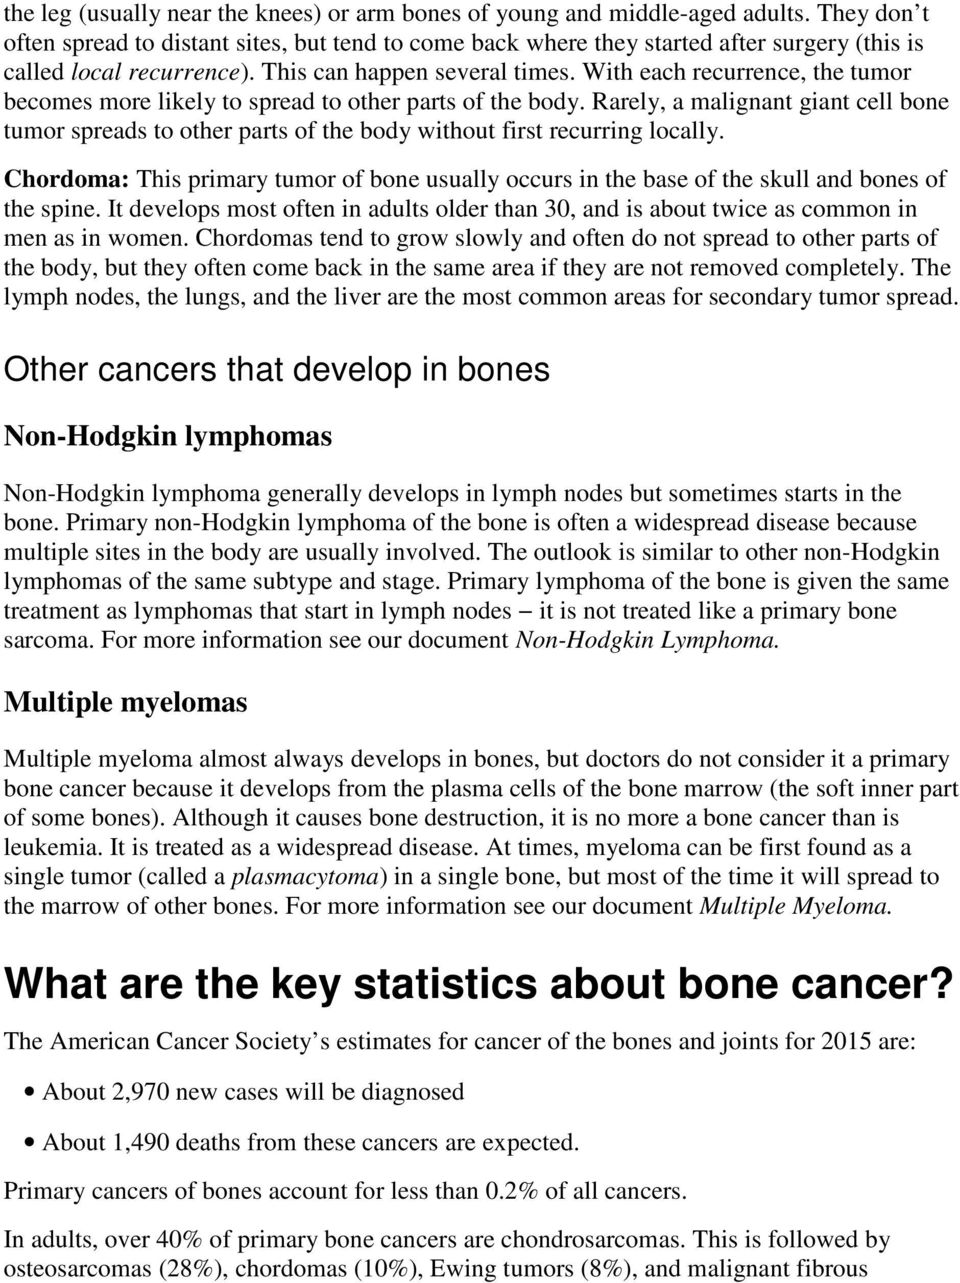 With each recurrence, the tumor becomes more likely to spread to other parts of the body. Rarely, a malignant giant cell bone tumor spreads to other parts of the body without first recurring locally.